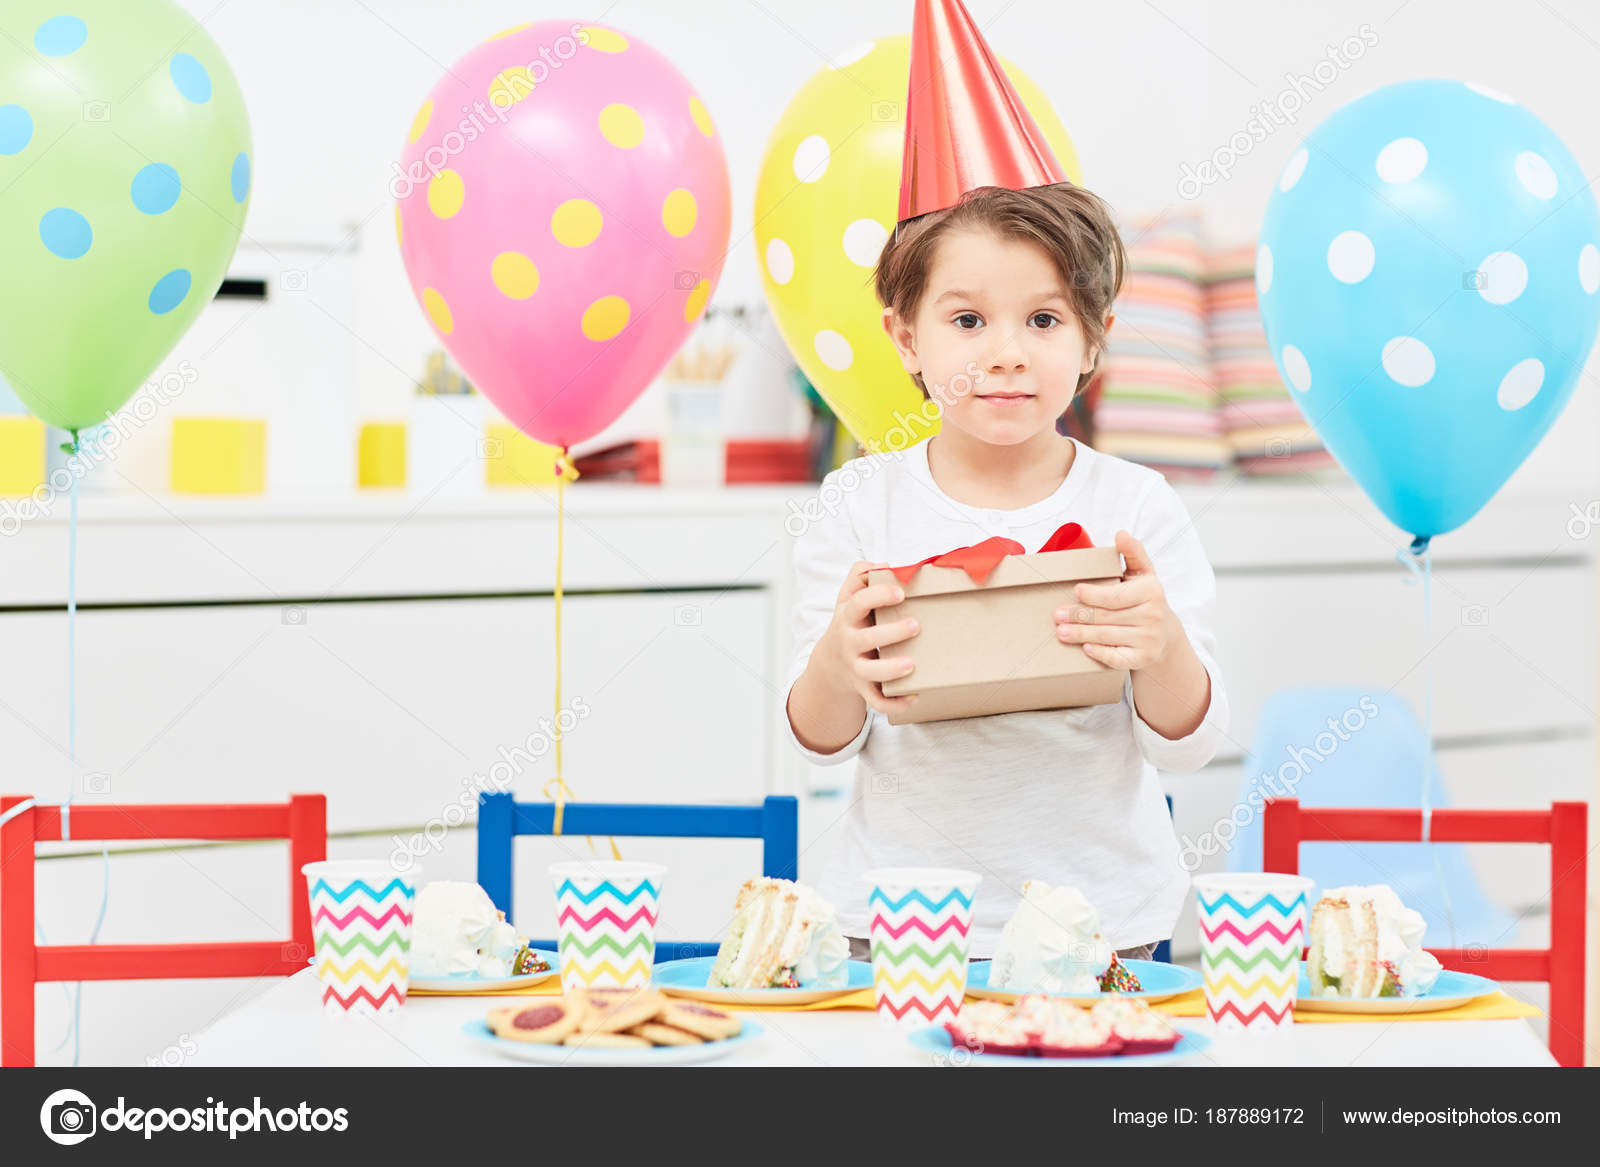 Young Boy Holding Box Birthday Gift Celebration Kindergarten Stock Photo